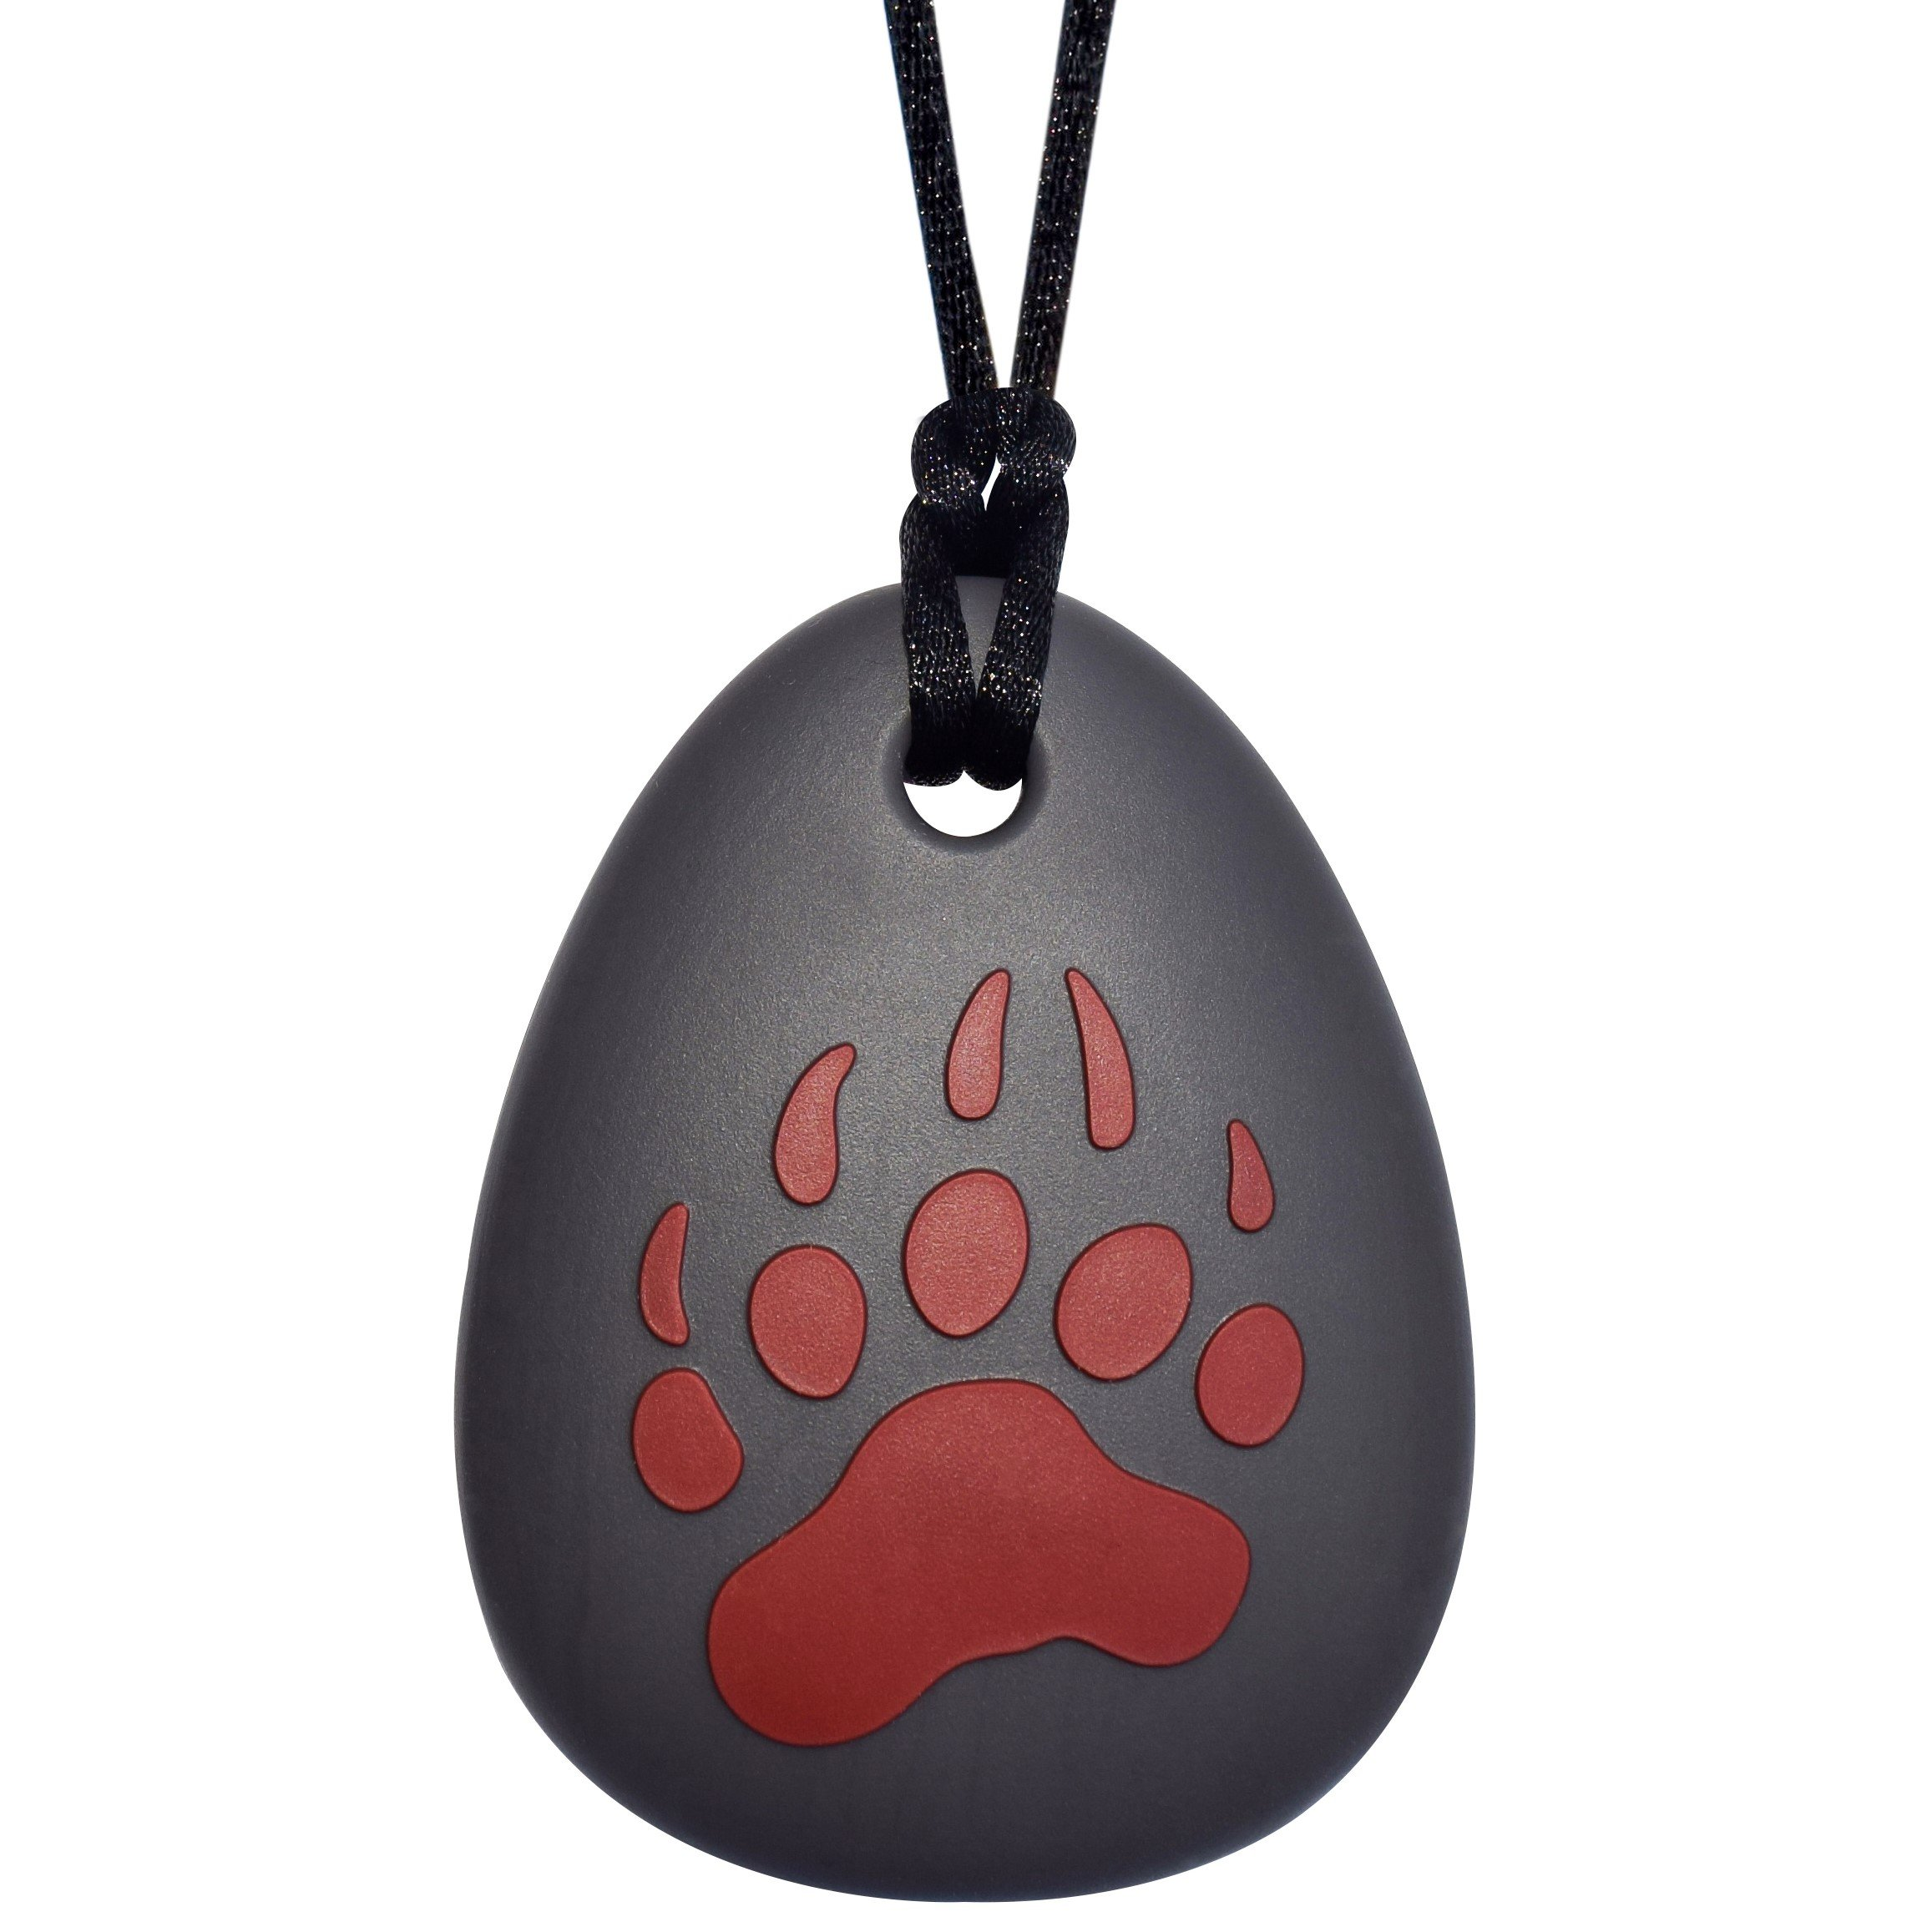 Sensory Oral Motor Aide Chewelry - Henna Red Bear Claw Chew Necklace for Sensory-Focused Kids